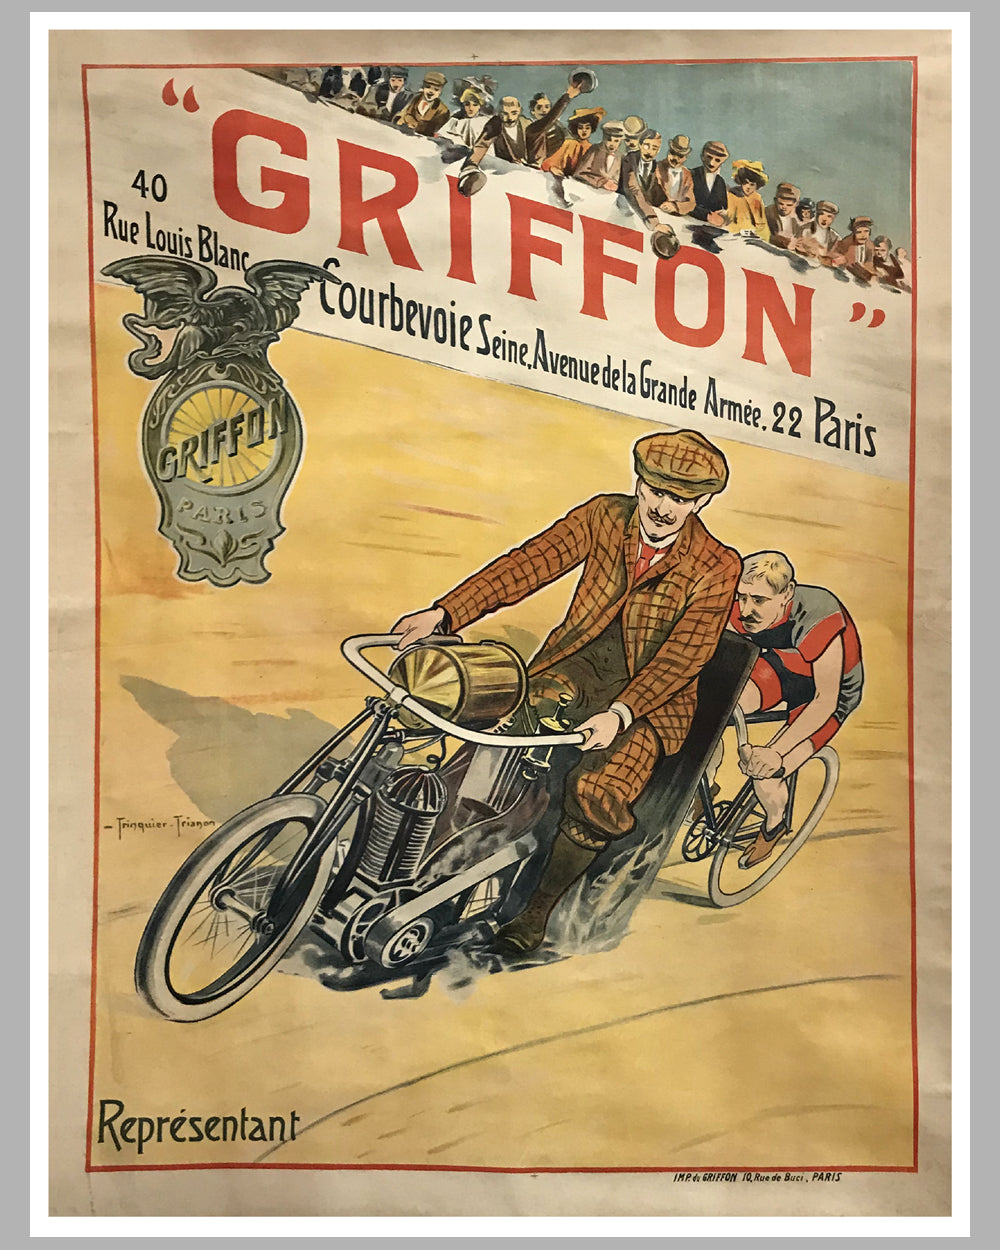 23 - Griffon motorcycles, bicycles large original poster ca. 1910 by Trinquier Trianon